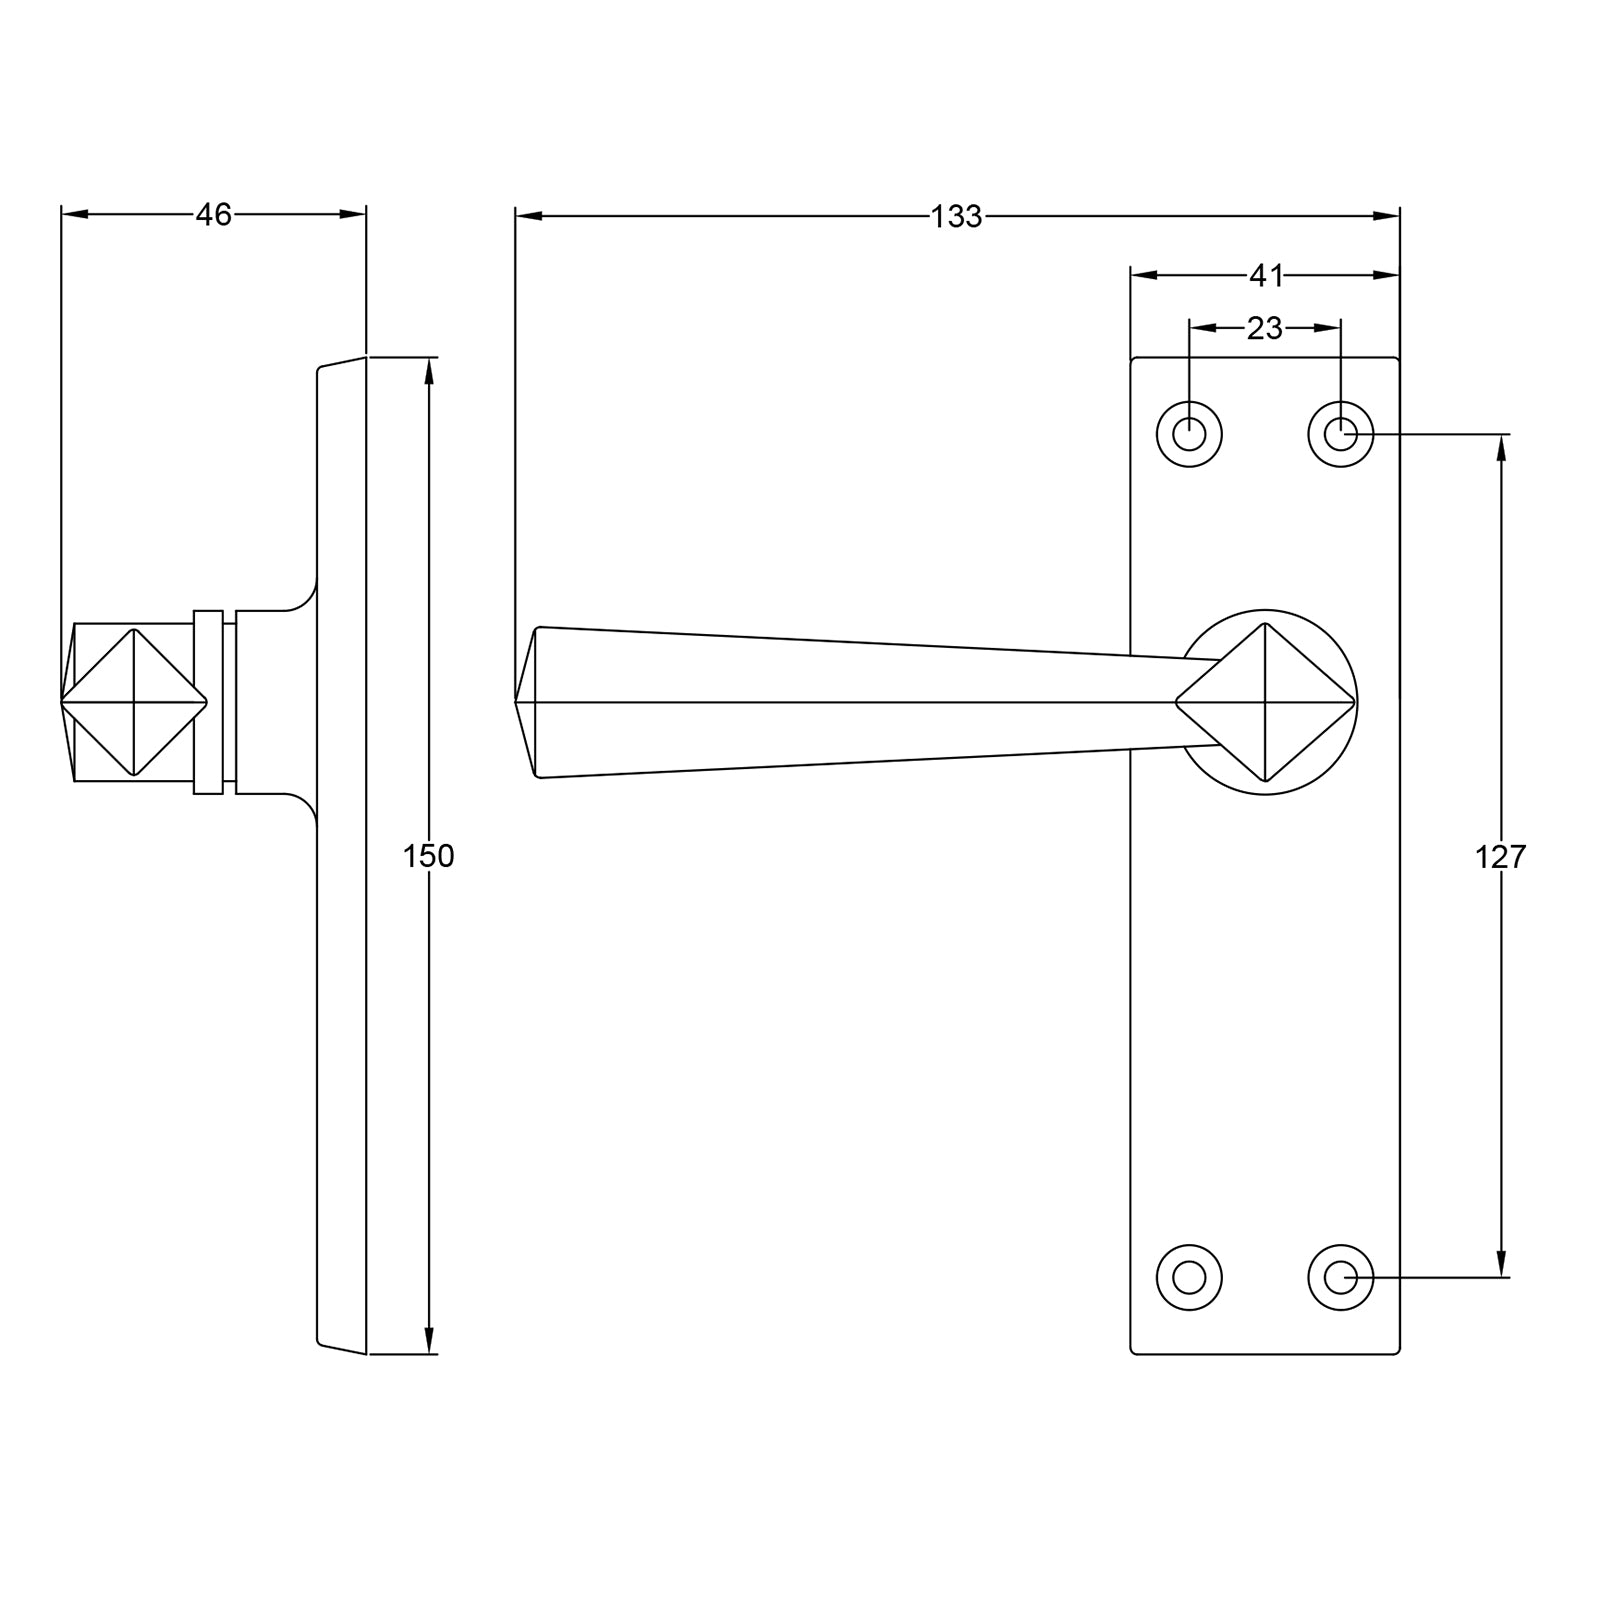 Straight lever door handle dimension drawing SHOW